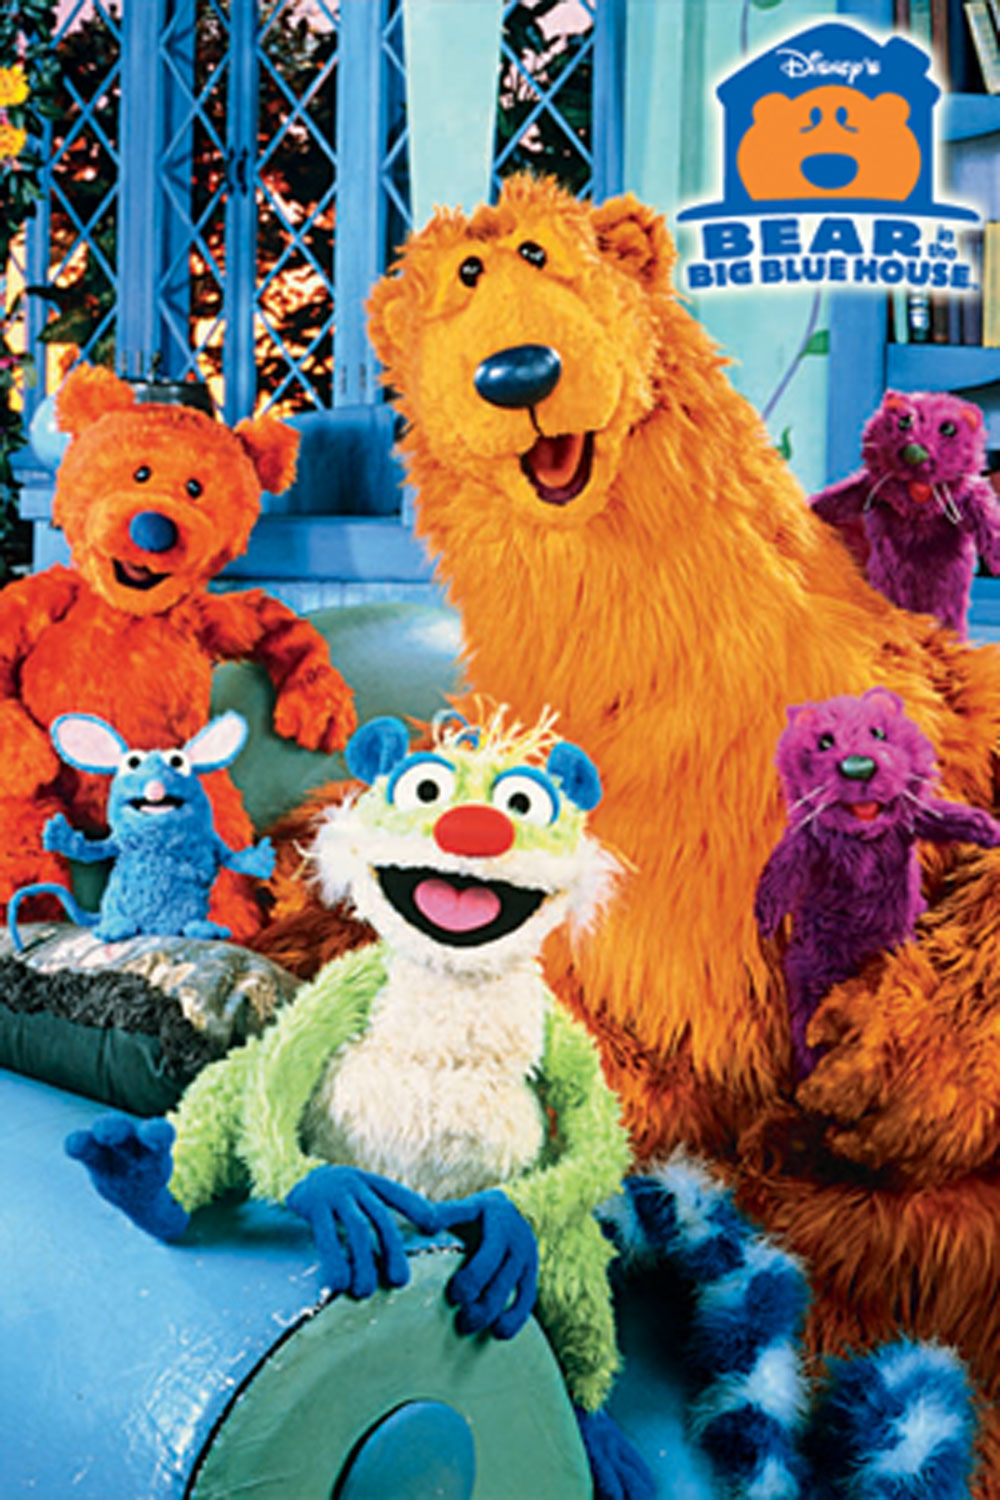 Bear%20in%20the%20Big%20Blue%20House